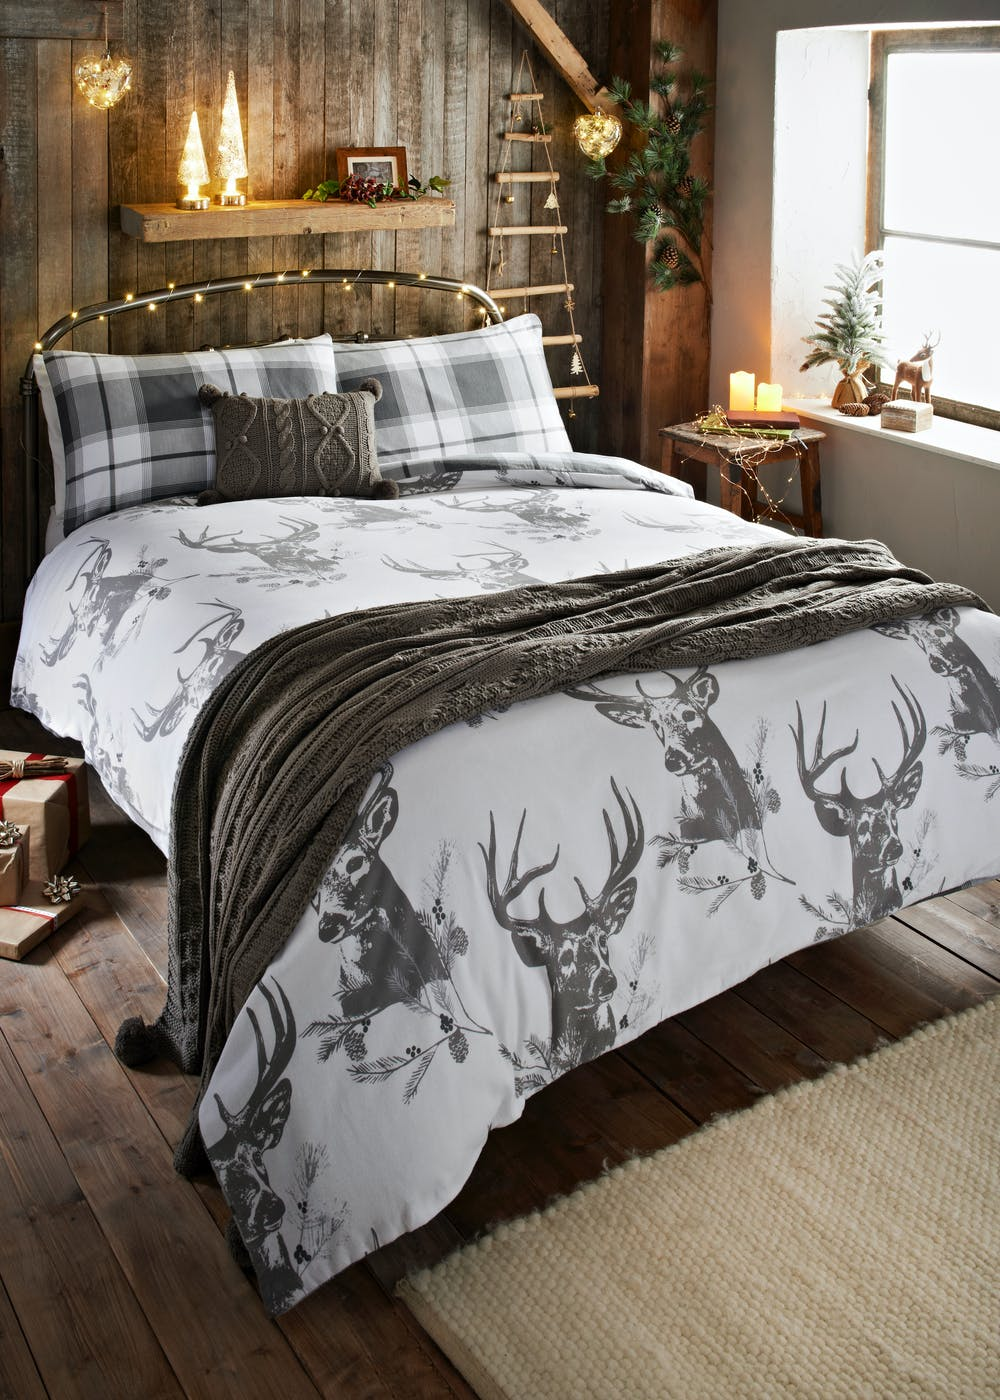 Fresh College Bedding Stock Of Bed Decorative